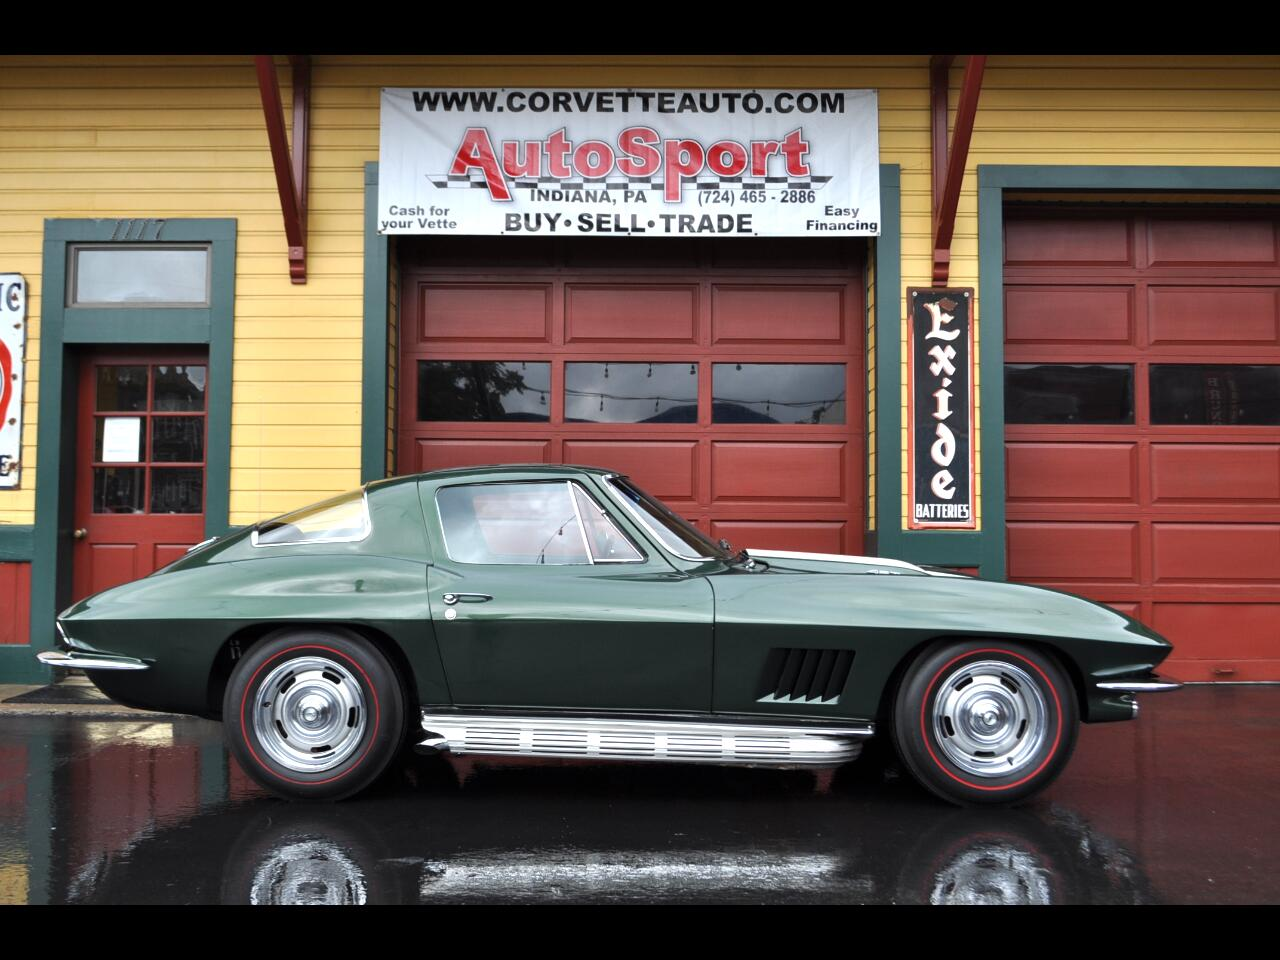 1967 Chevrolet Corvette Goodwood Green Tan 427ci 390hp 4sp Big Block!